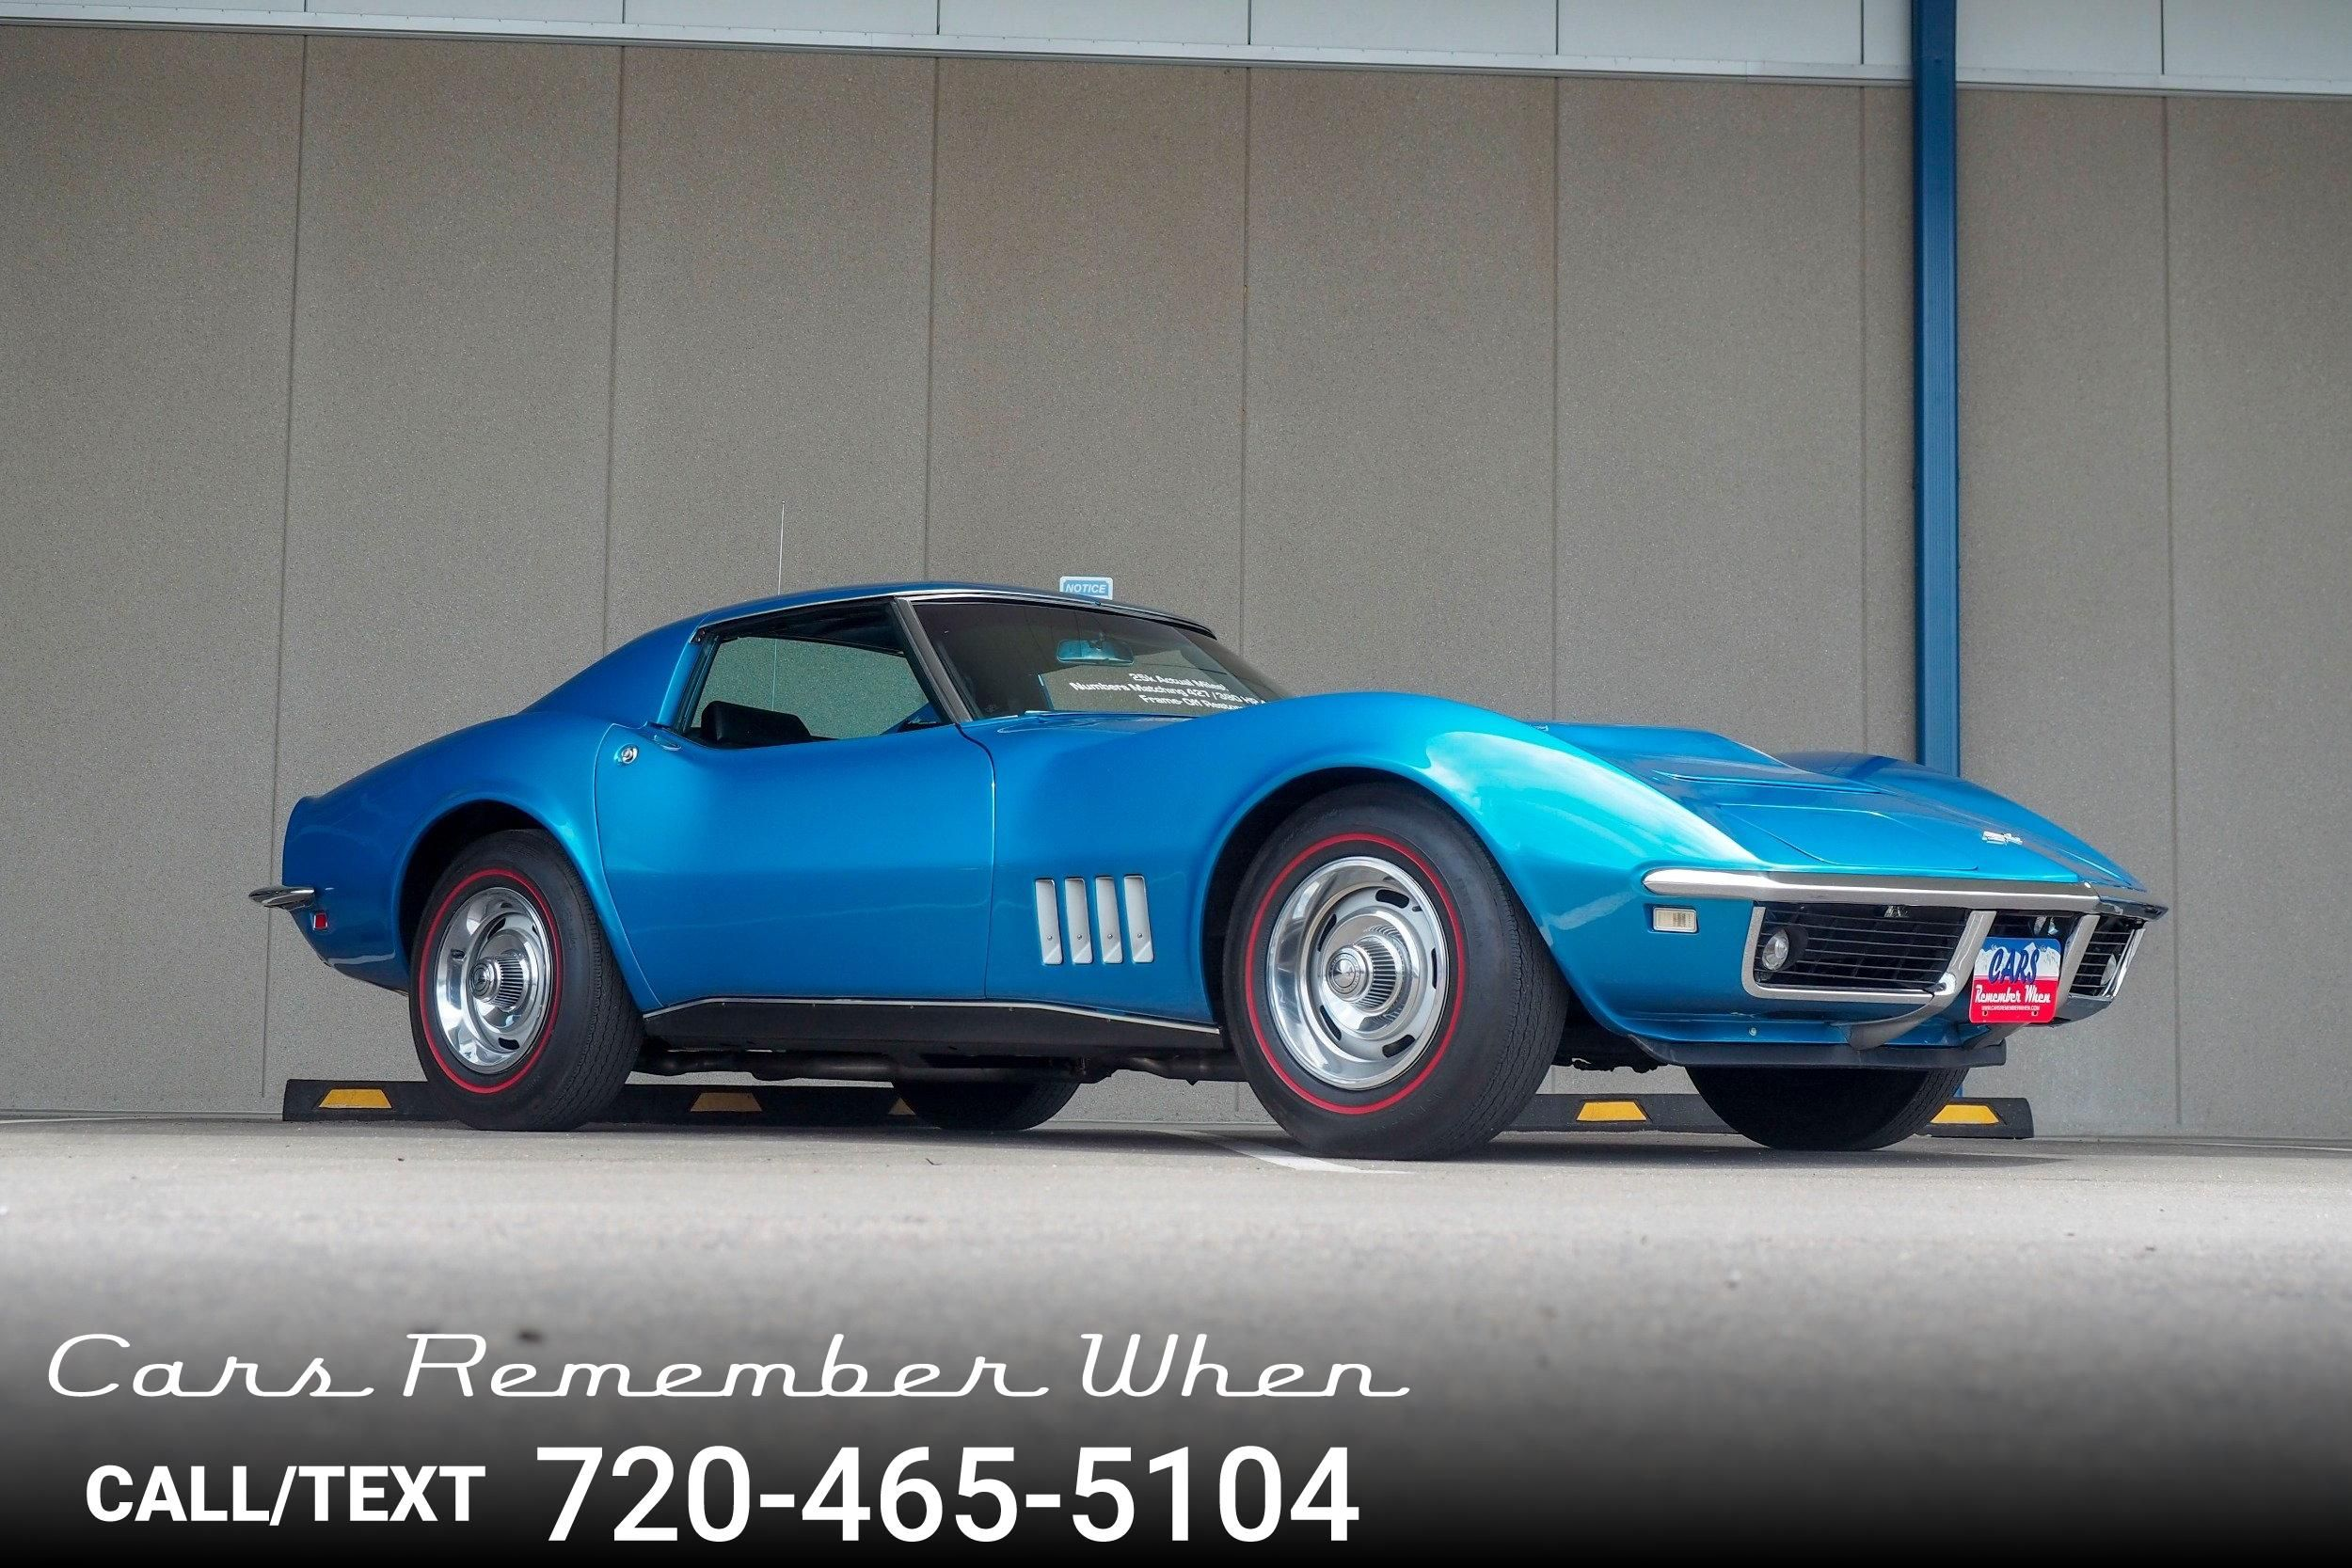 Classic Cars For Sale   Cars Remember When